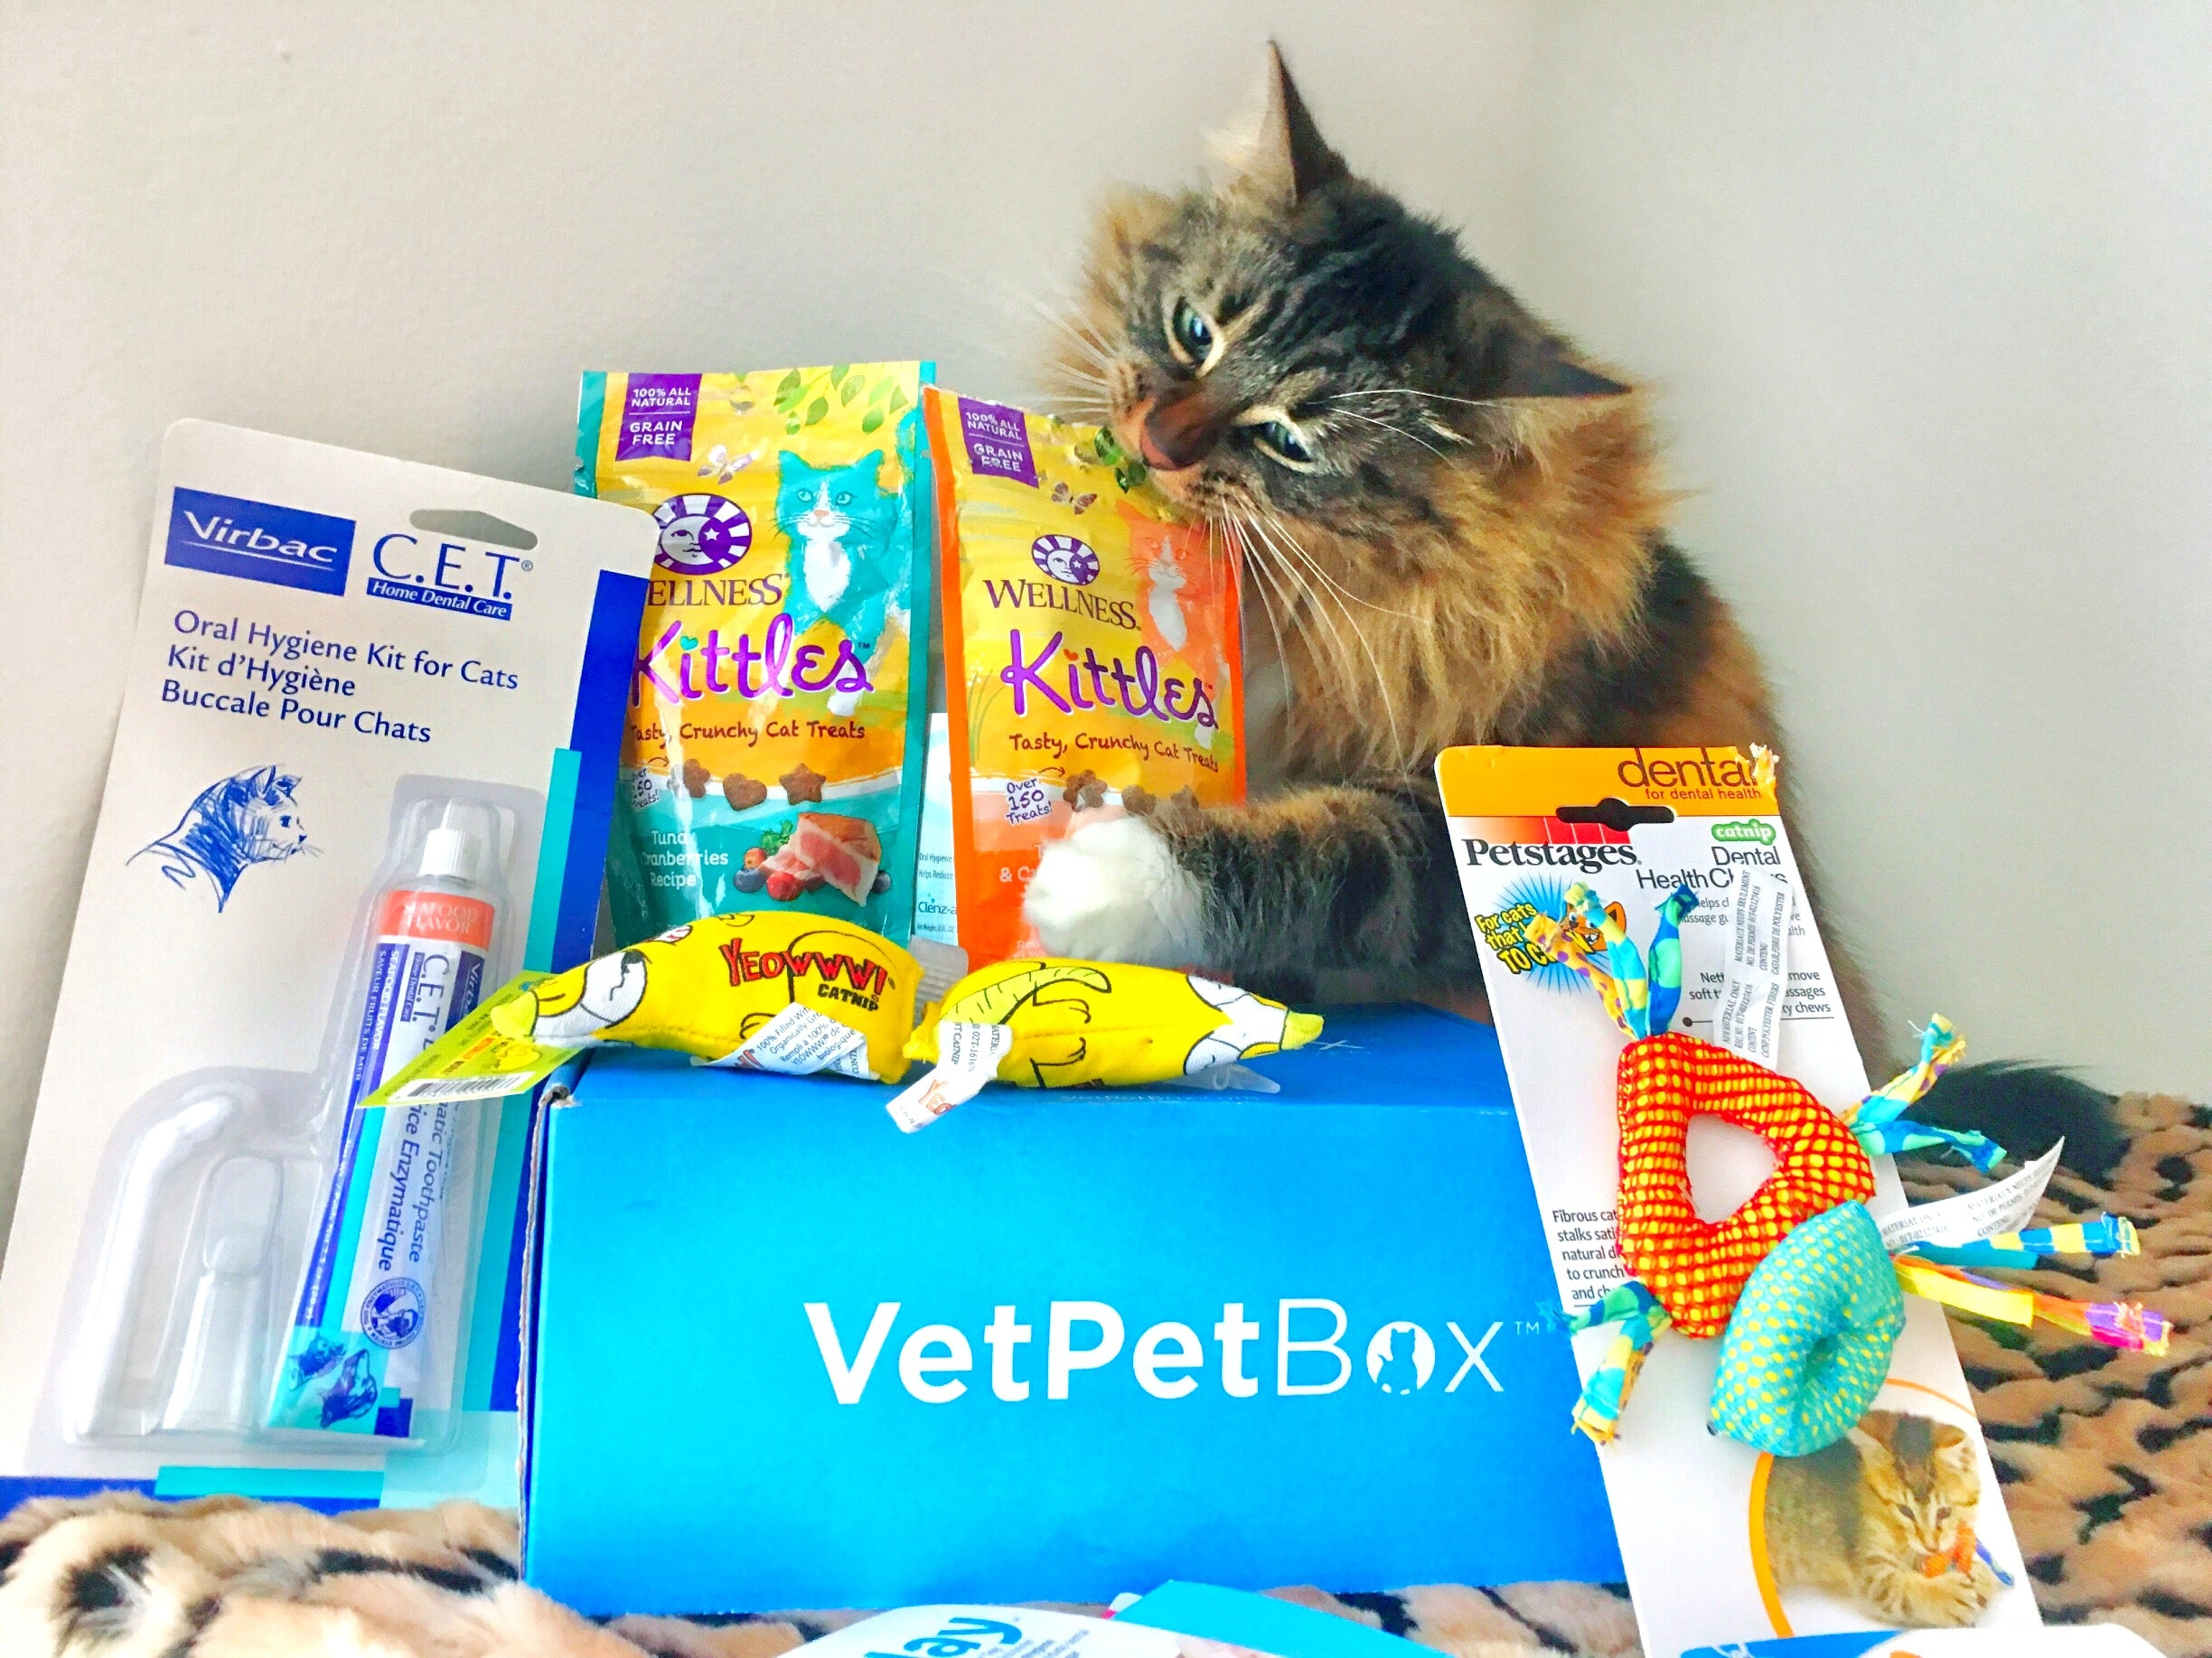 Vet Pet Box with all contents displayed and fluffy cat nibbling on the top of a bag of treats.